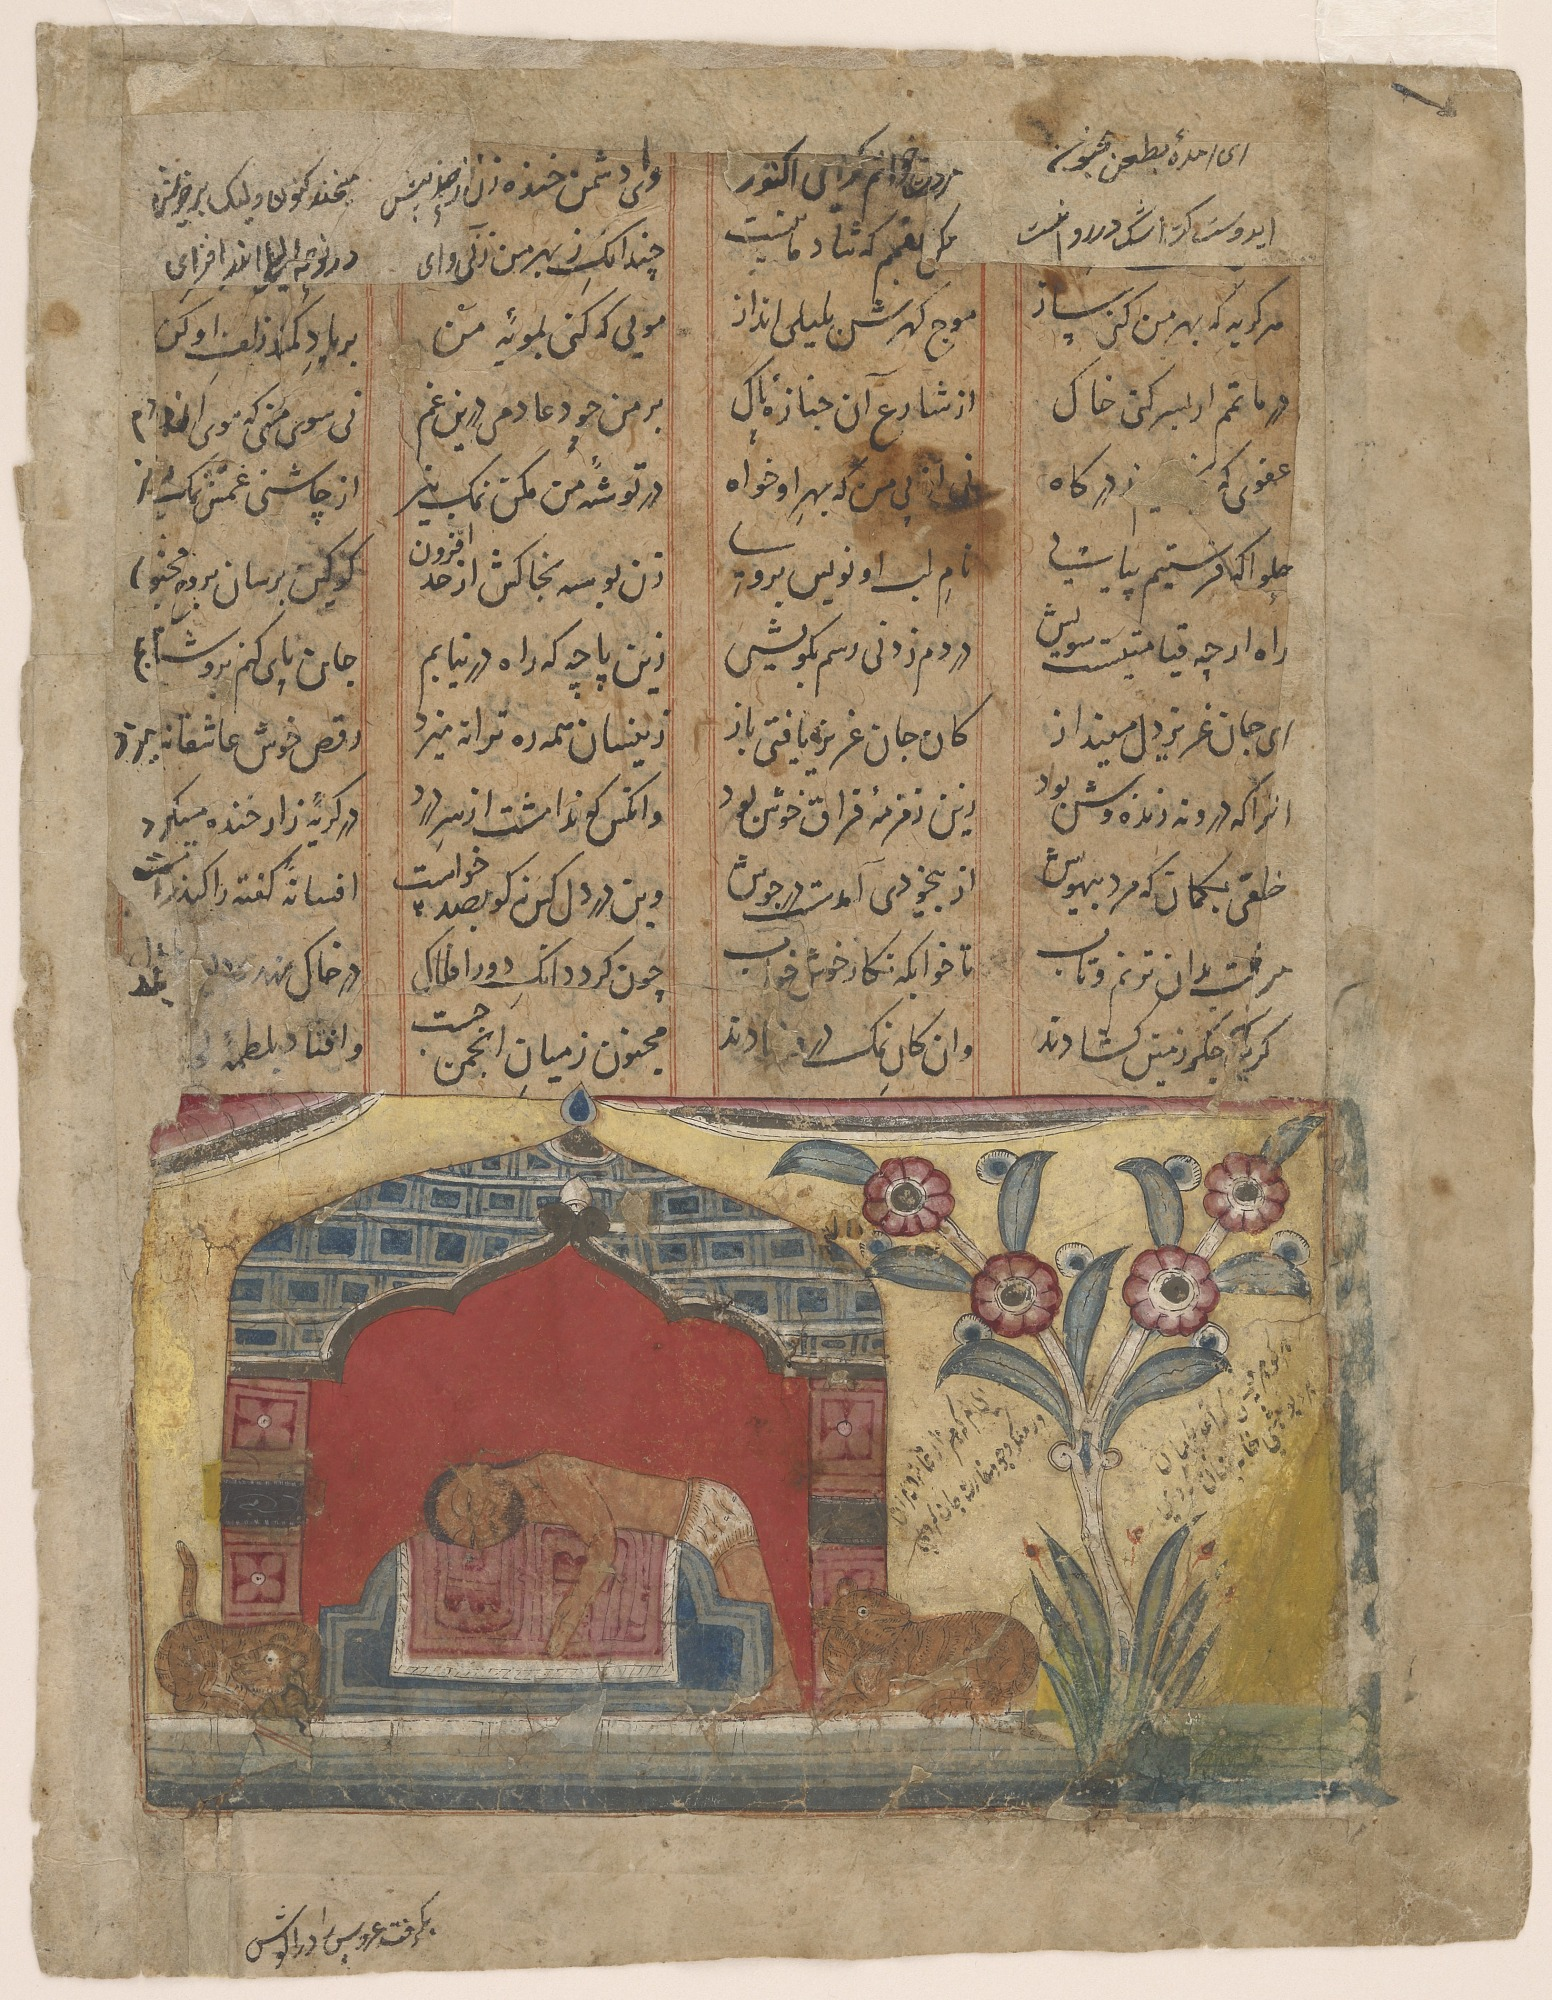 recto: Majnun throwing himself onto Layla's grave, folio from a Khamsa (Quintet) of Amir Khusraw Dihlavi